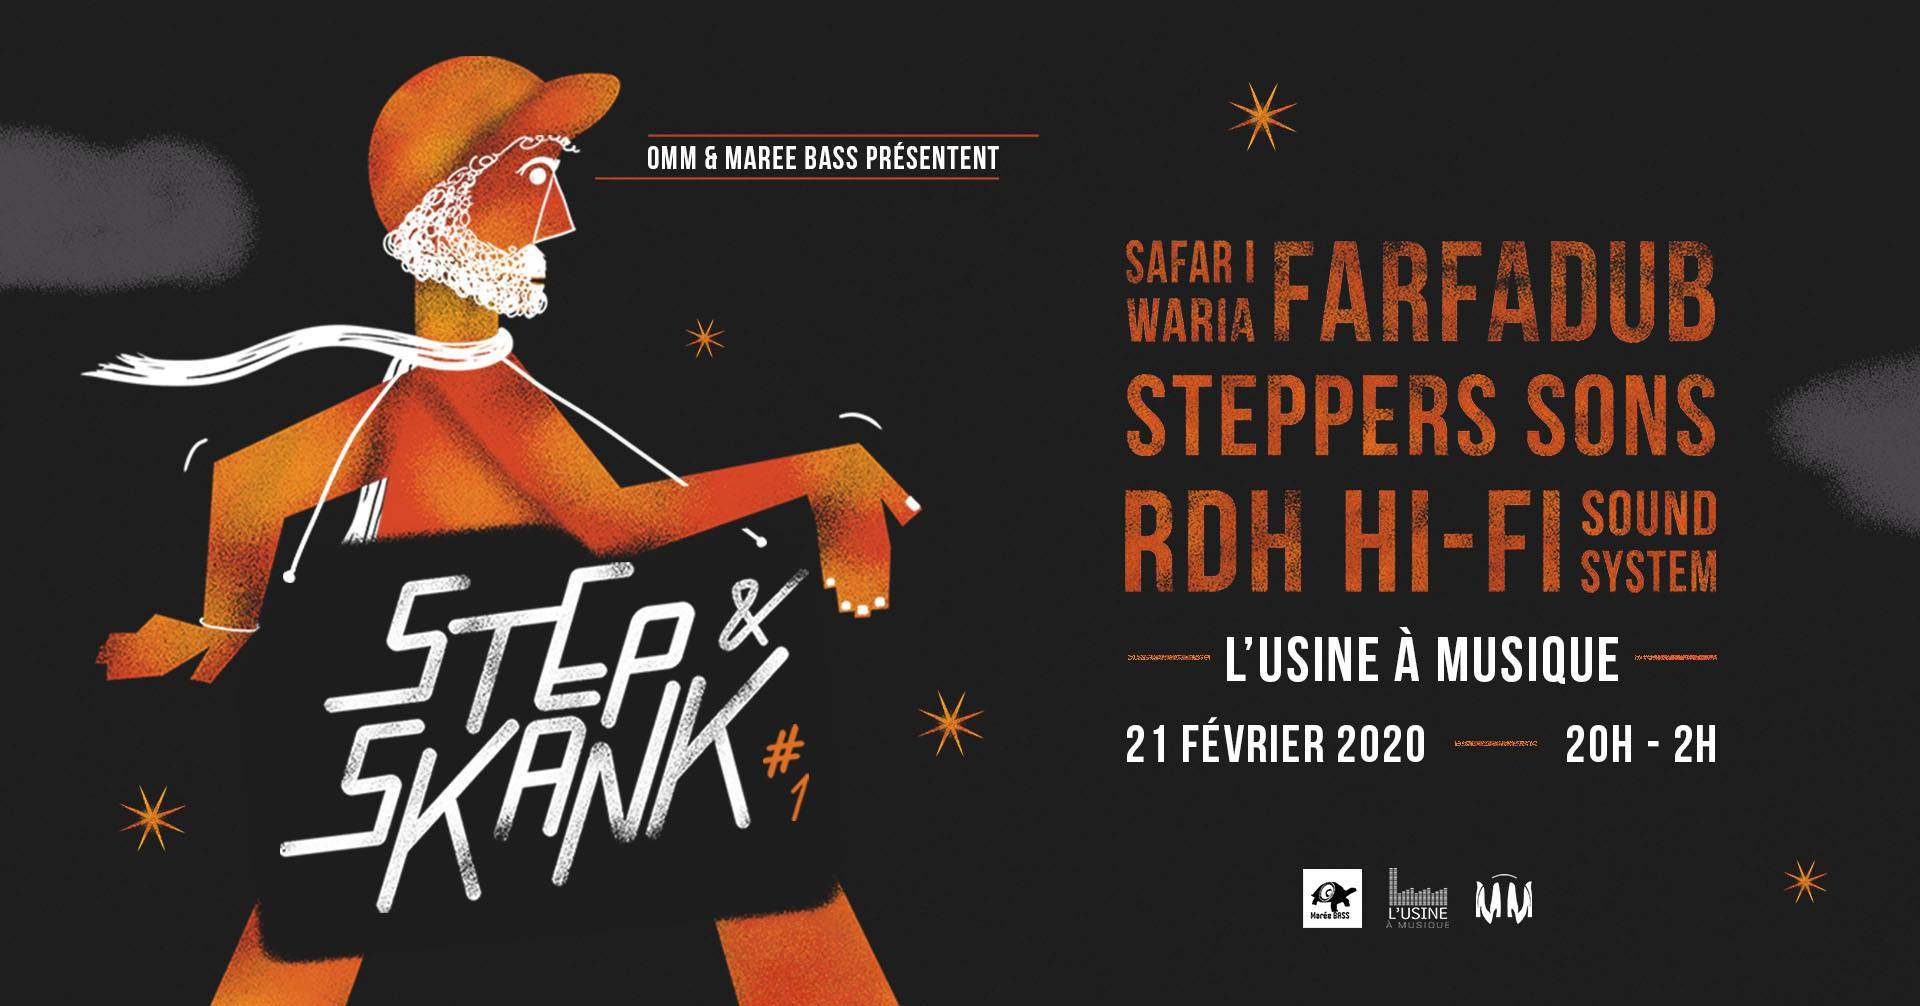 Forward Bass Culture Festival #1 – Les Docks de Paris – 22 et 23 Novembre 2019